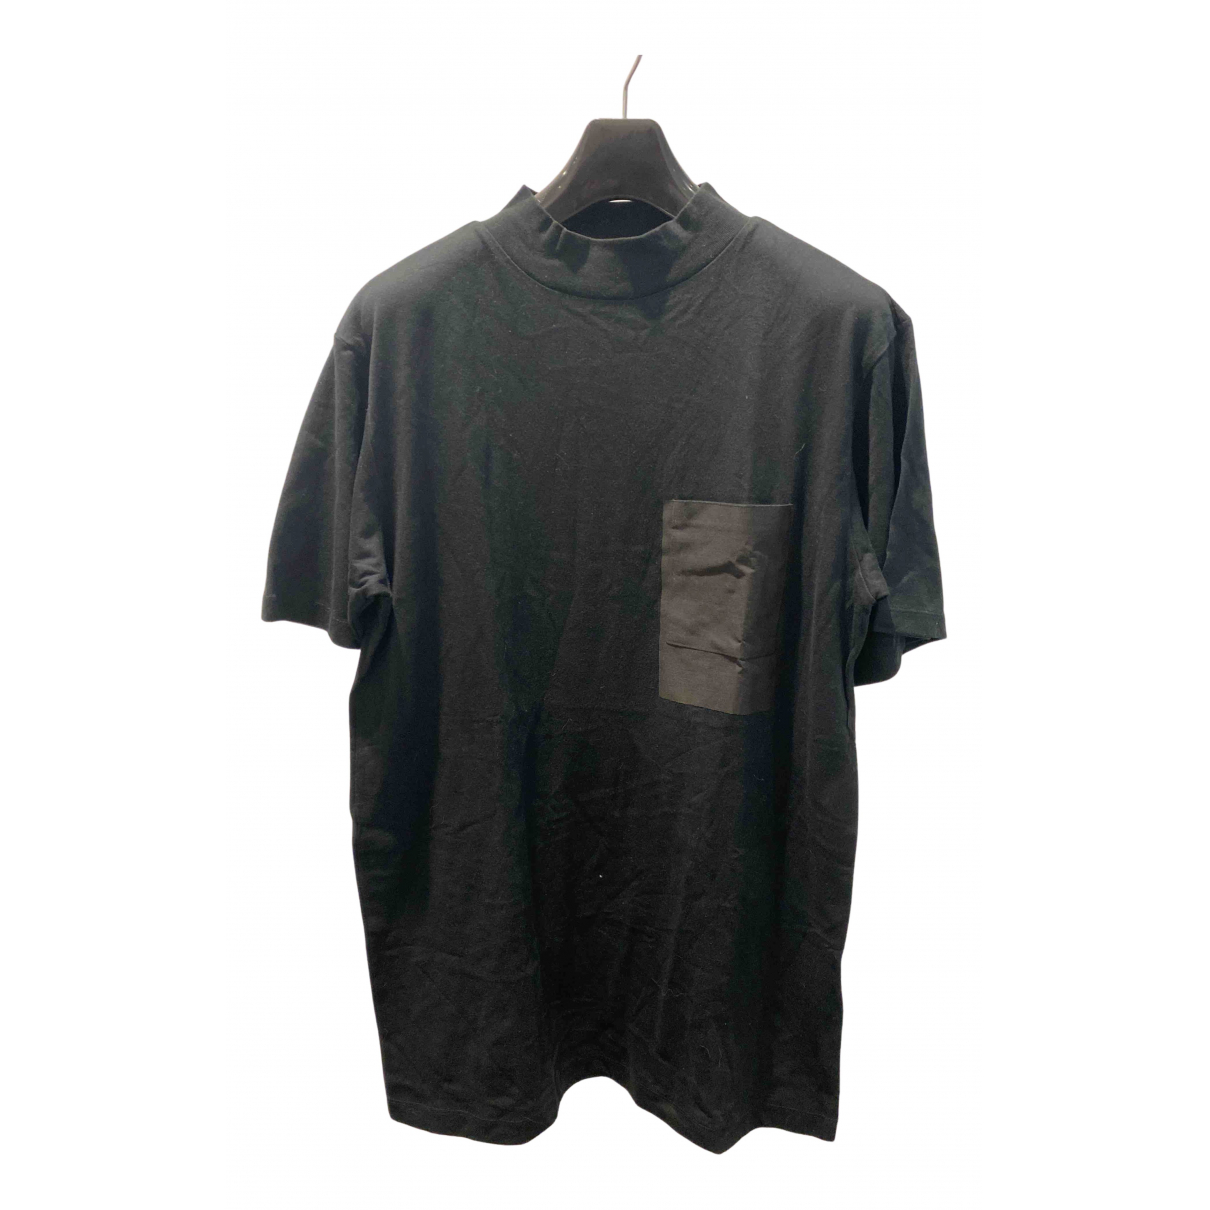 Opening Ceremony N Black Cotton T-shirts for Men 0 0 - 6